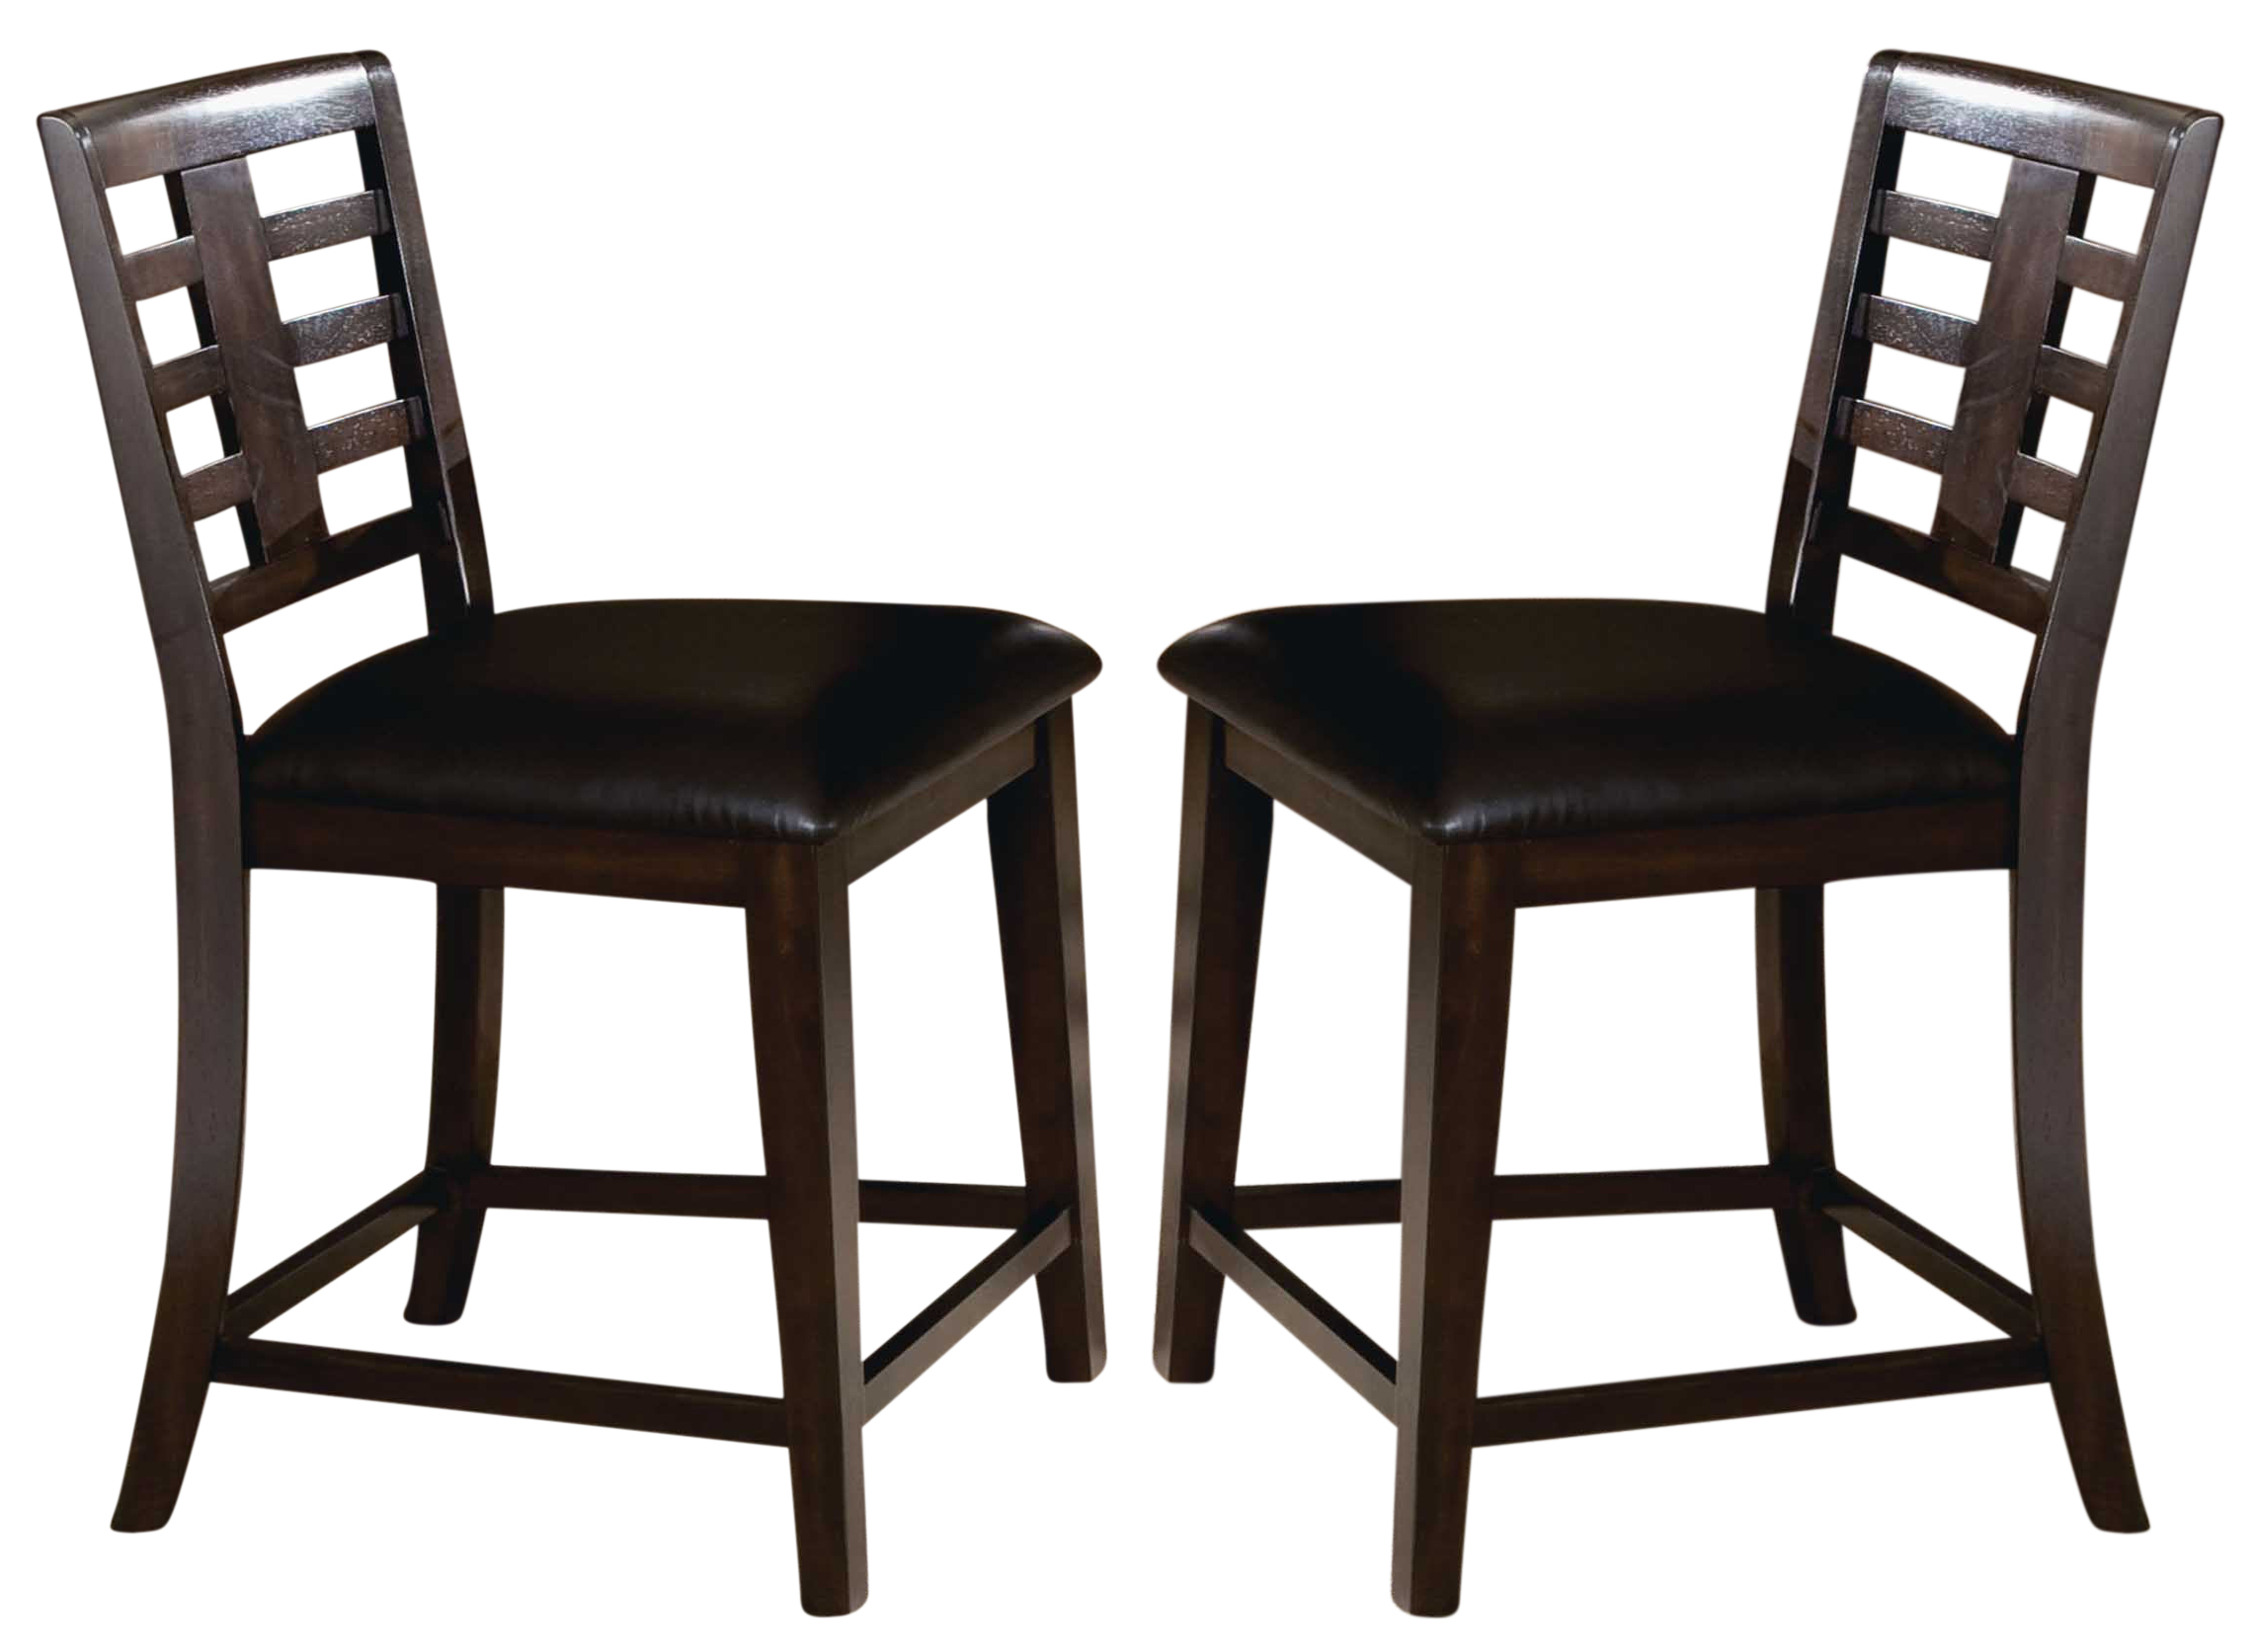 Standard Dining Chair Height Standard Furniture Bella 24 Quot Seat Height Stool Set Of 2